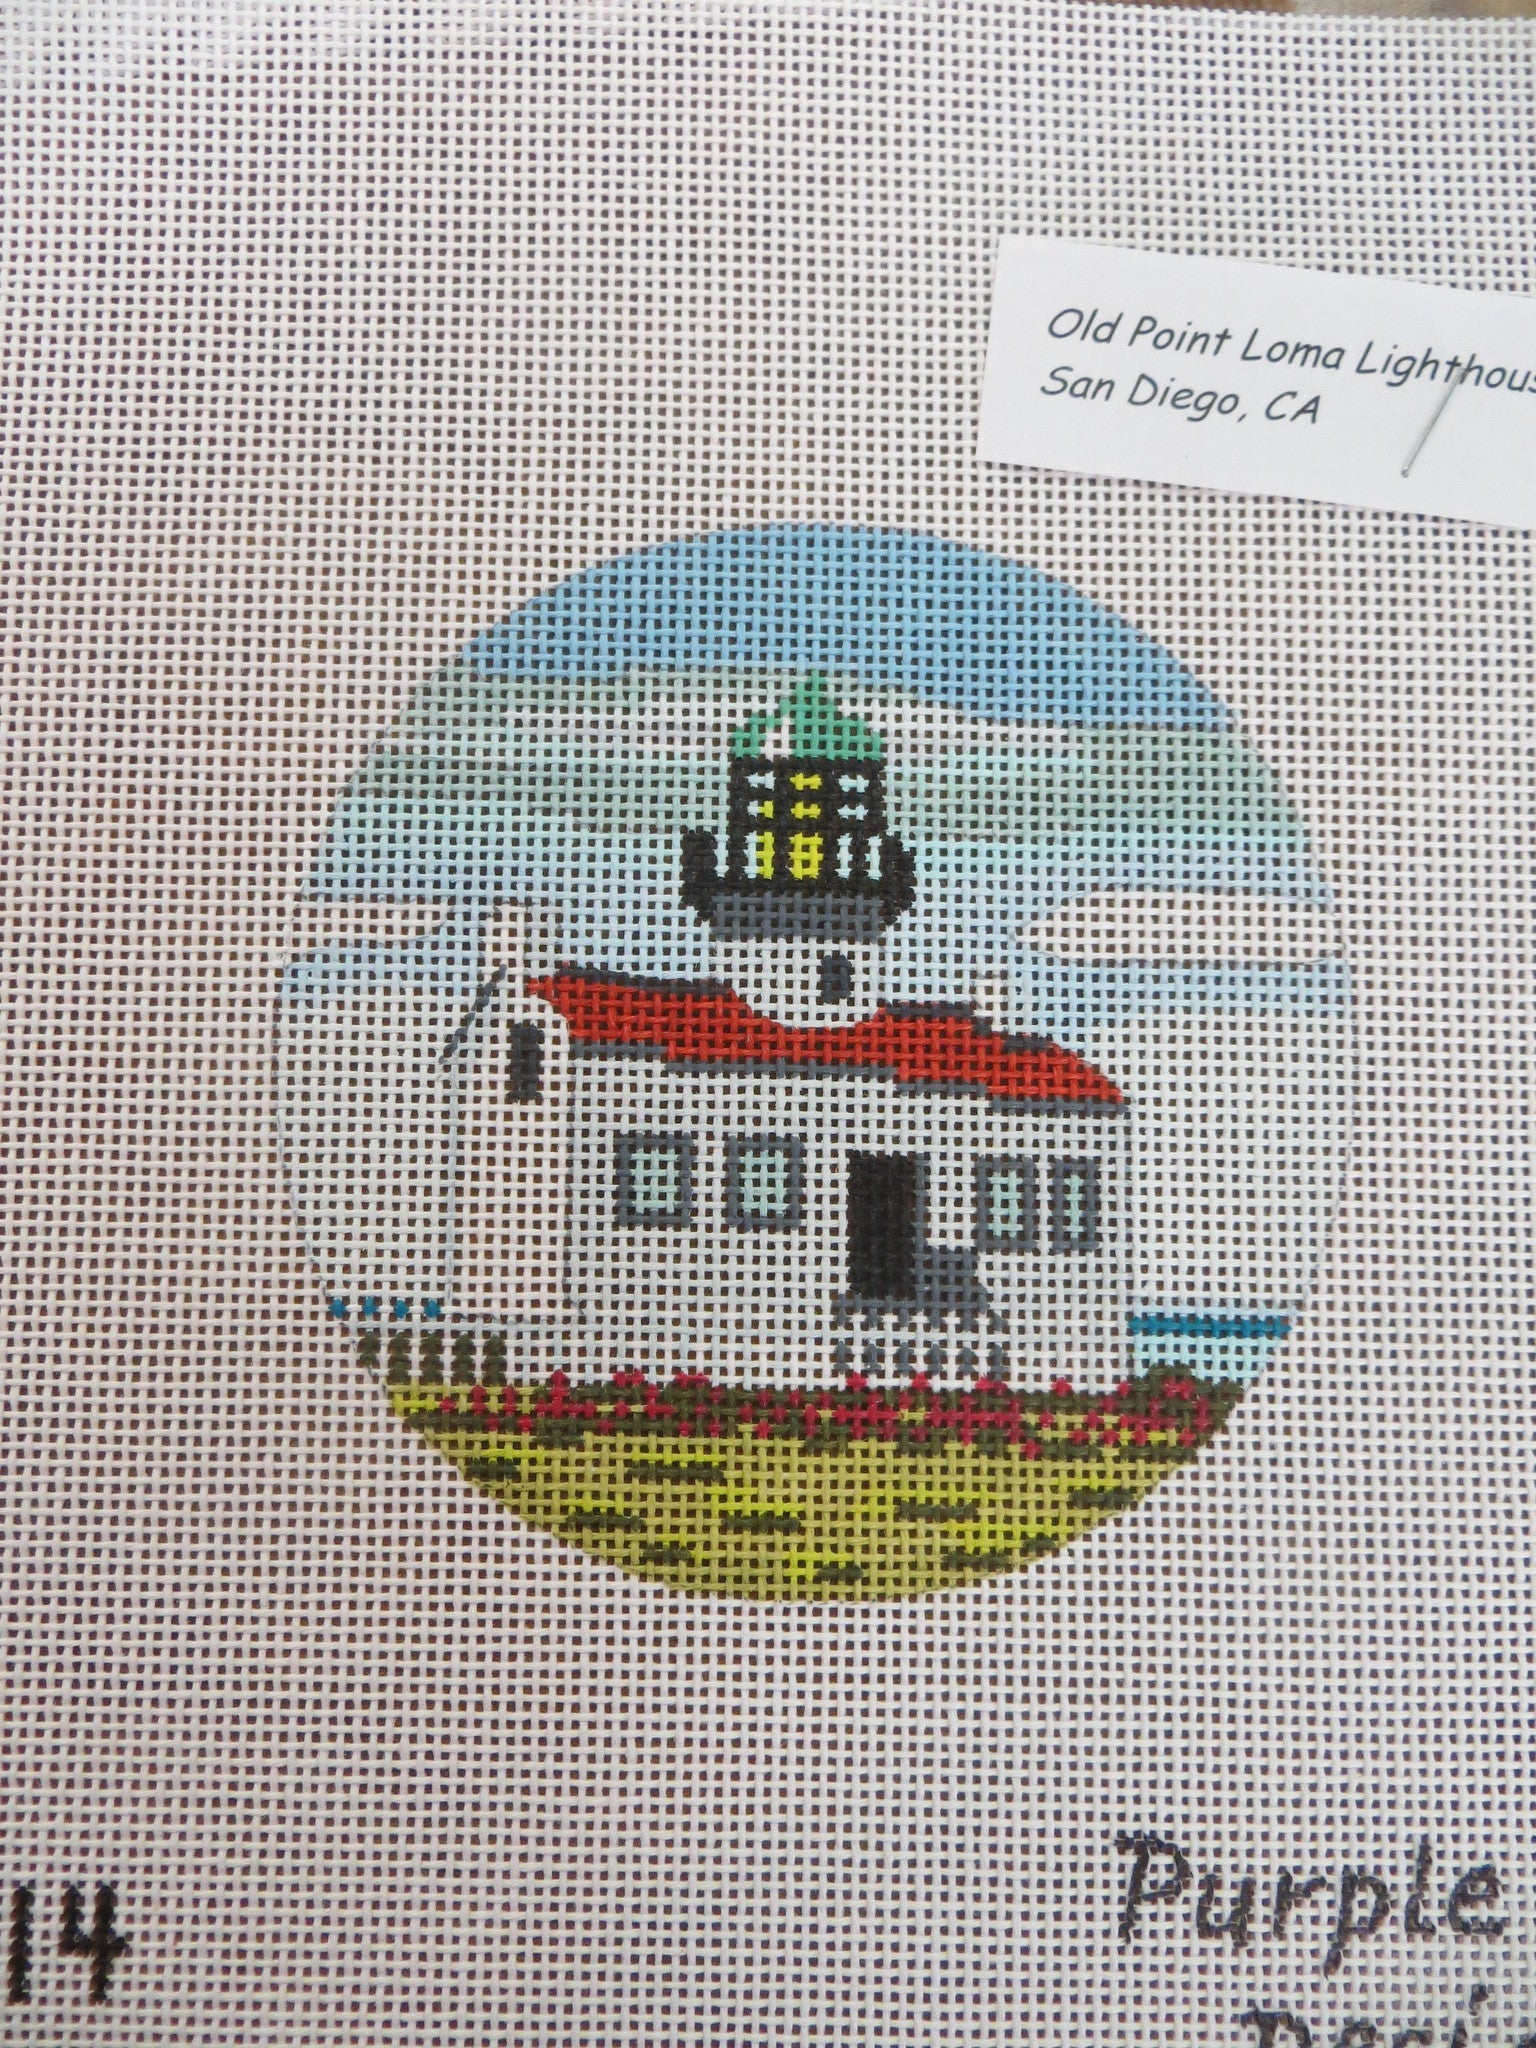 Old Point Loma Lighthouse Ornament